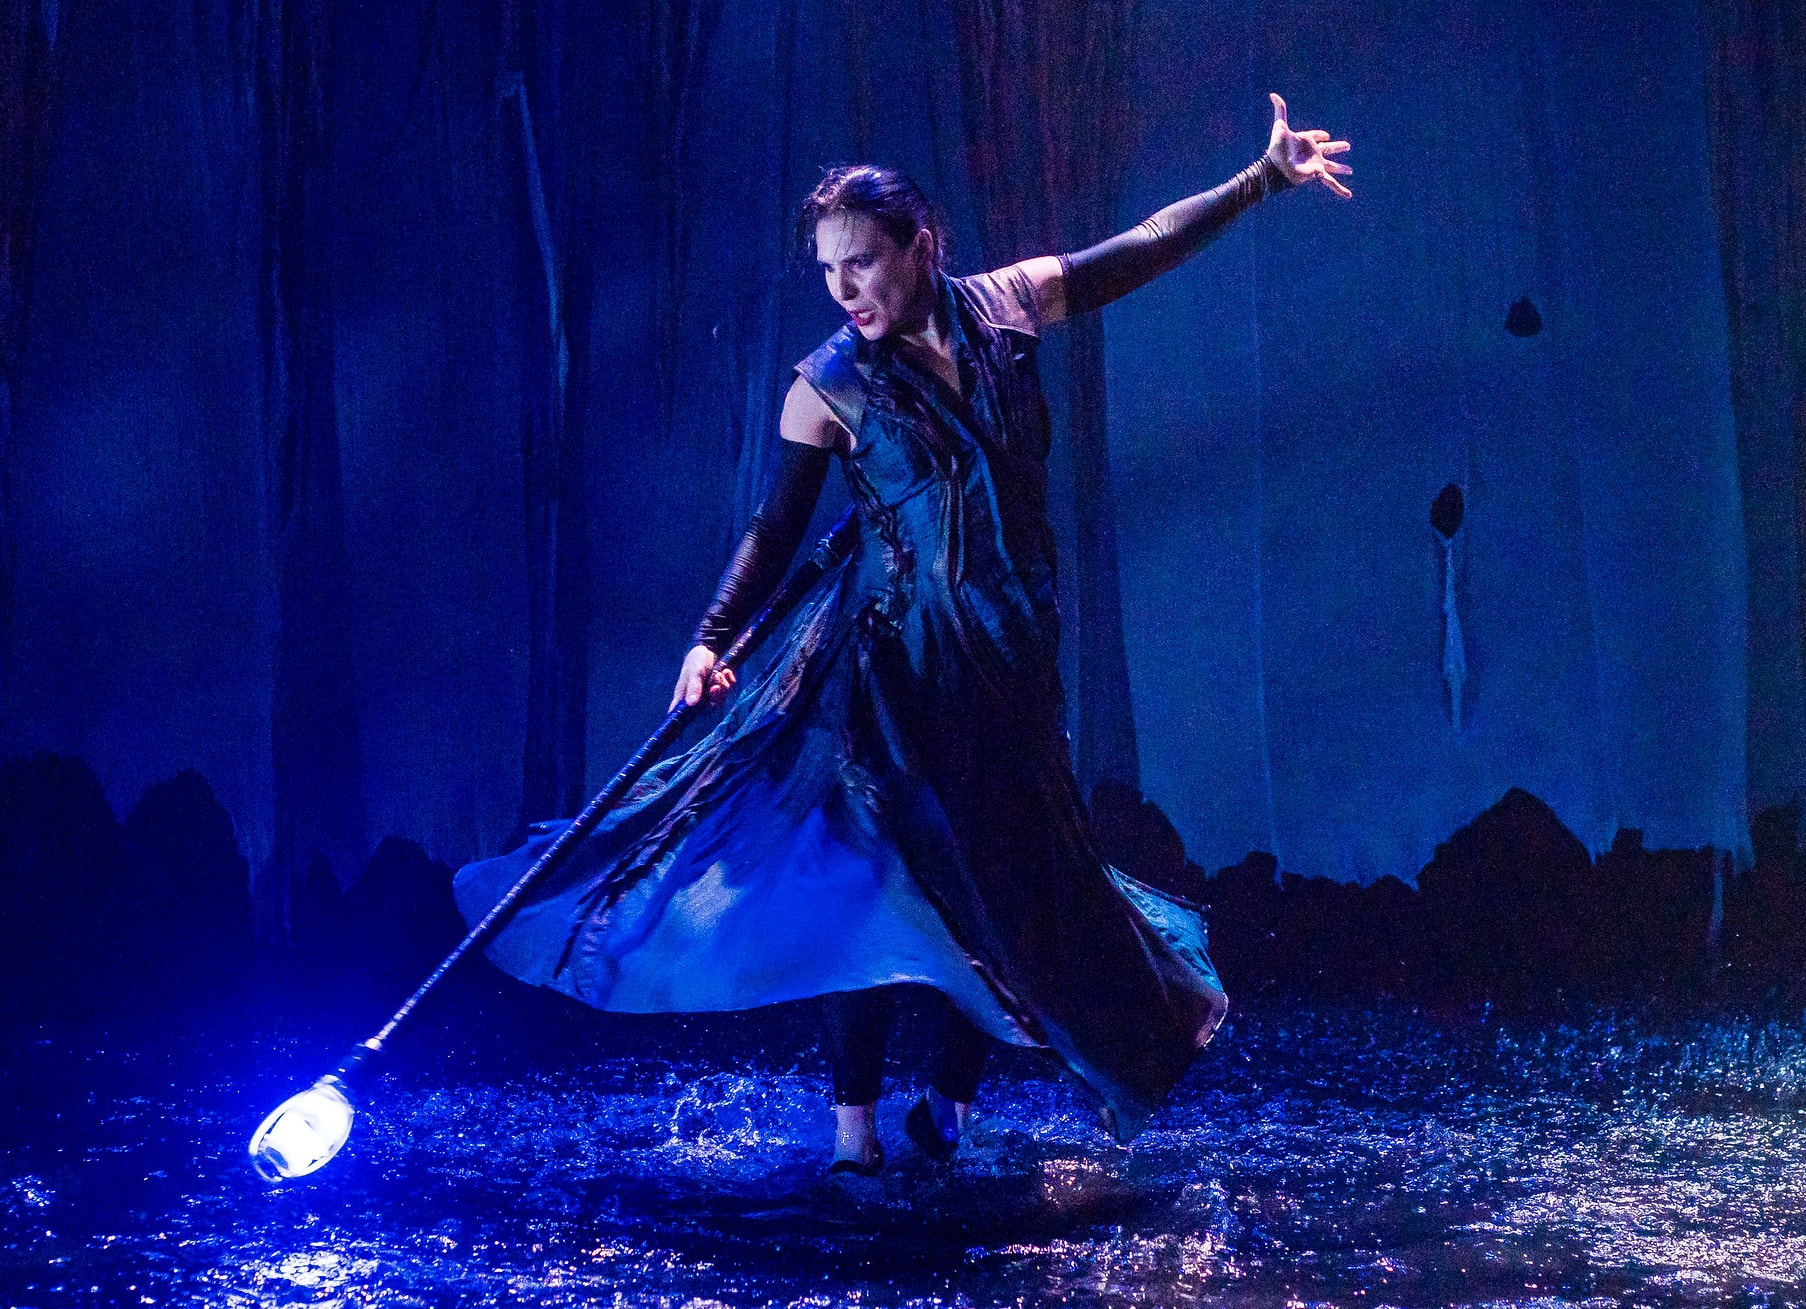 Irina Tsikurishvili as Prospera in 'The Tempest' at Synetic Theater. Photo by Johnny Shryock.